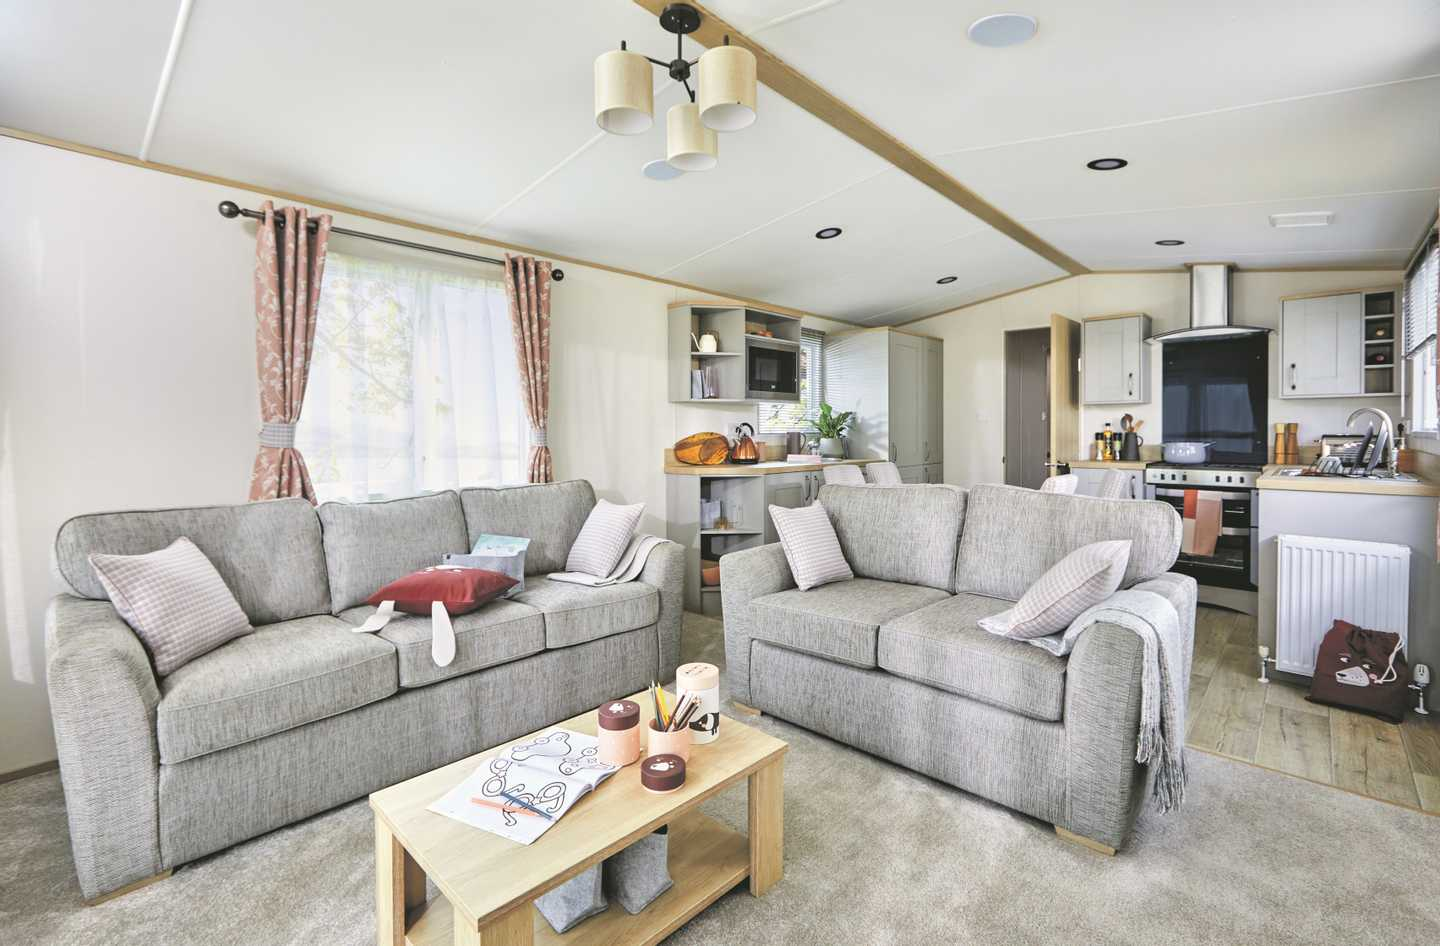 Interior of a luxurious lounge in an Abi Windermere caravan